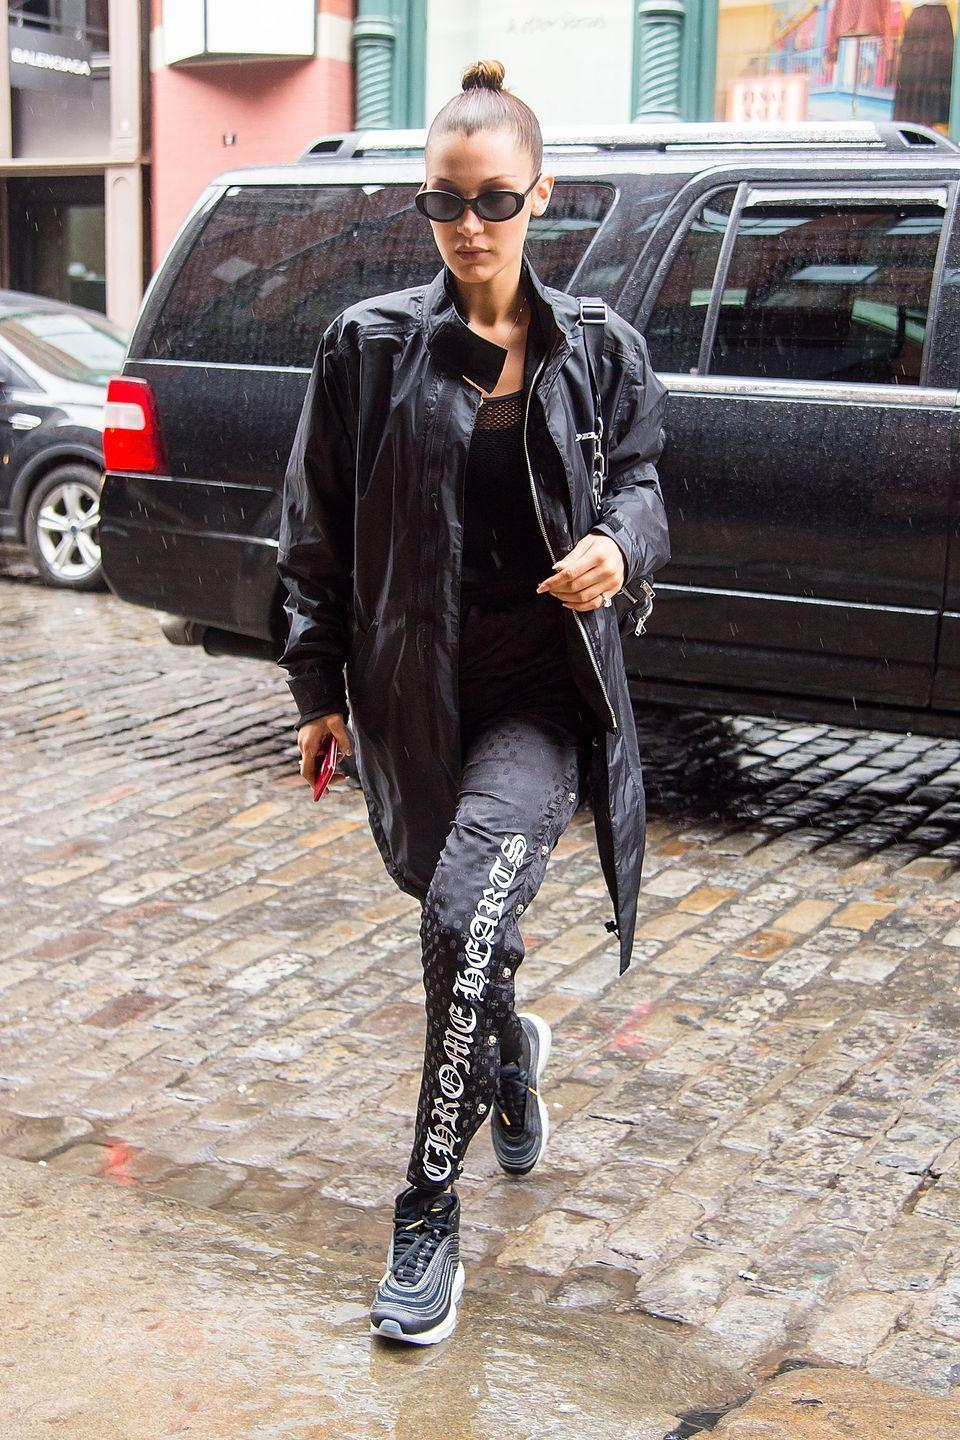 """<p>In a sleek raincoat, <span class=""""redactor-unlink"""">Chrome Hearts x Bella</span> silk sweats and sneakers out in Manhattan. </p>"""